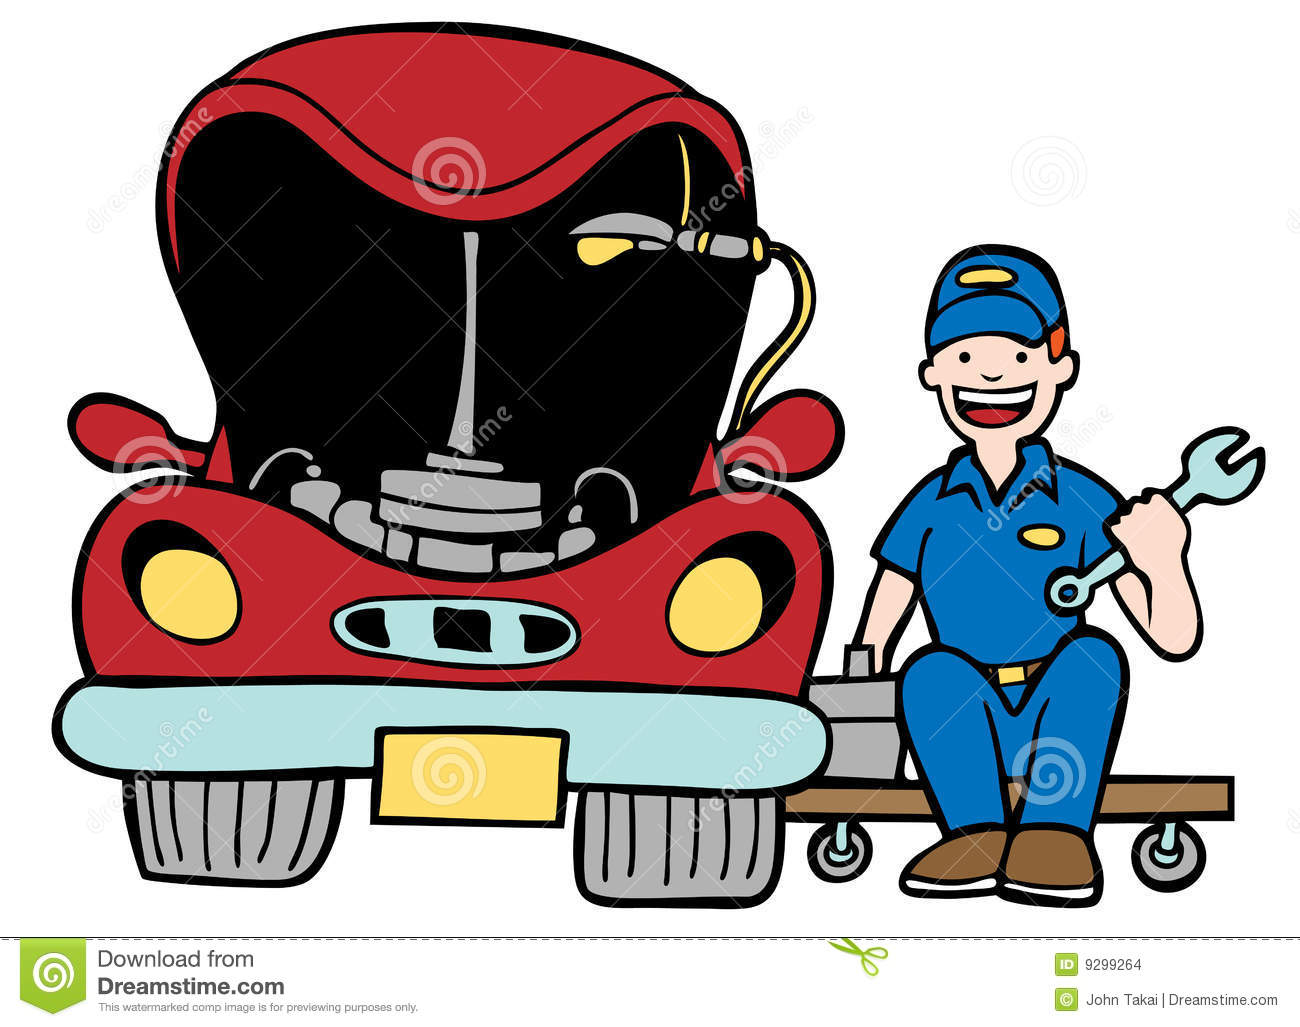 Auto Repair Clipart Jpg Car Pictures-Auto Repair Clipart Jpg Car Pictures-5